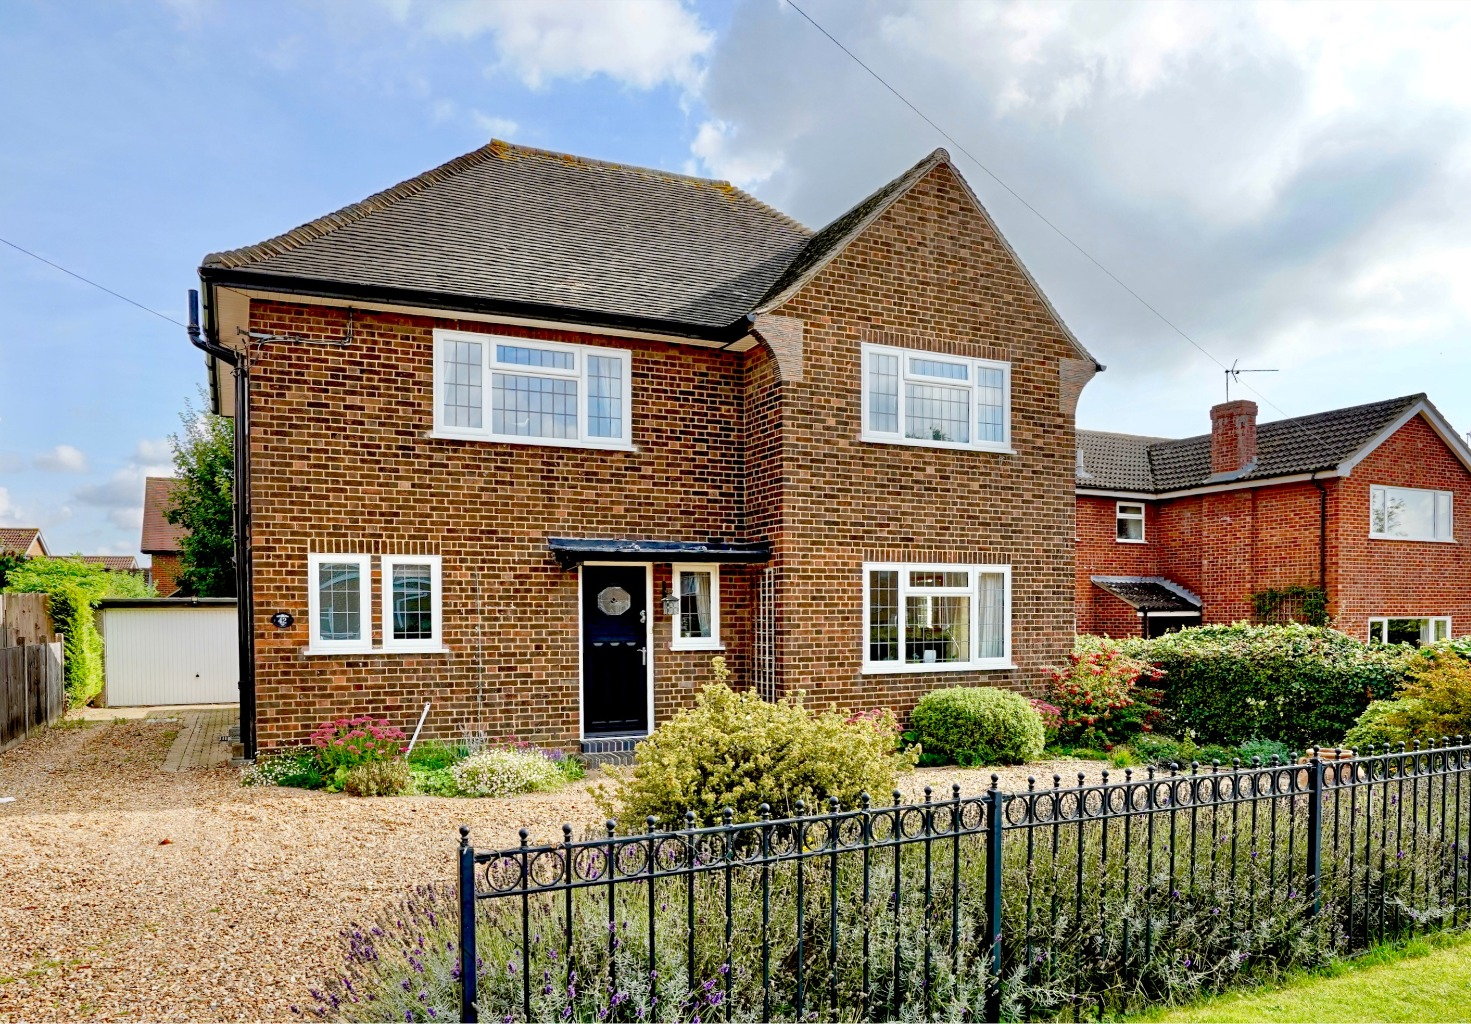 3 bed detached house for sale in Lucks Lane, St. Neots  - Property Image 1